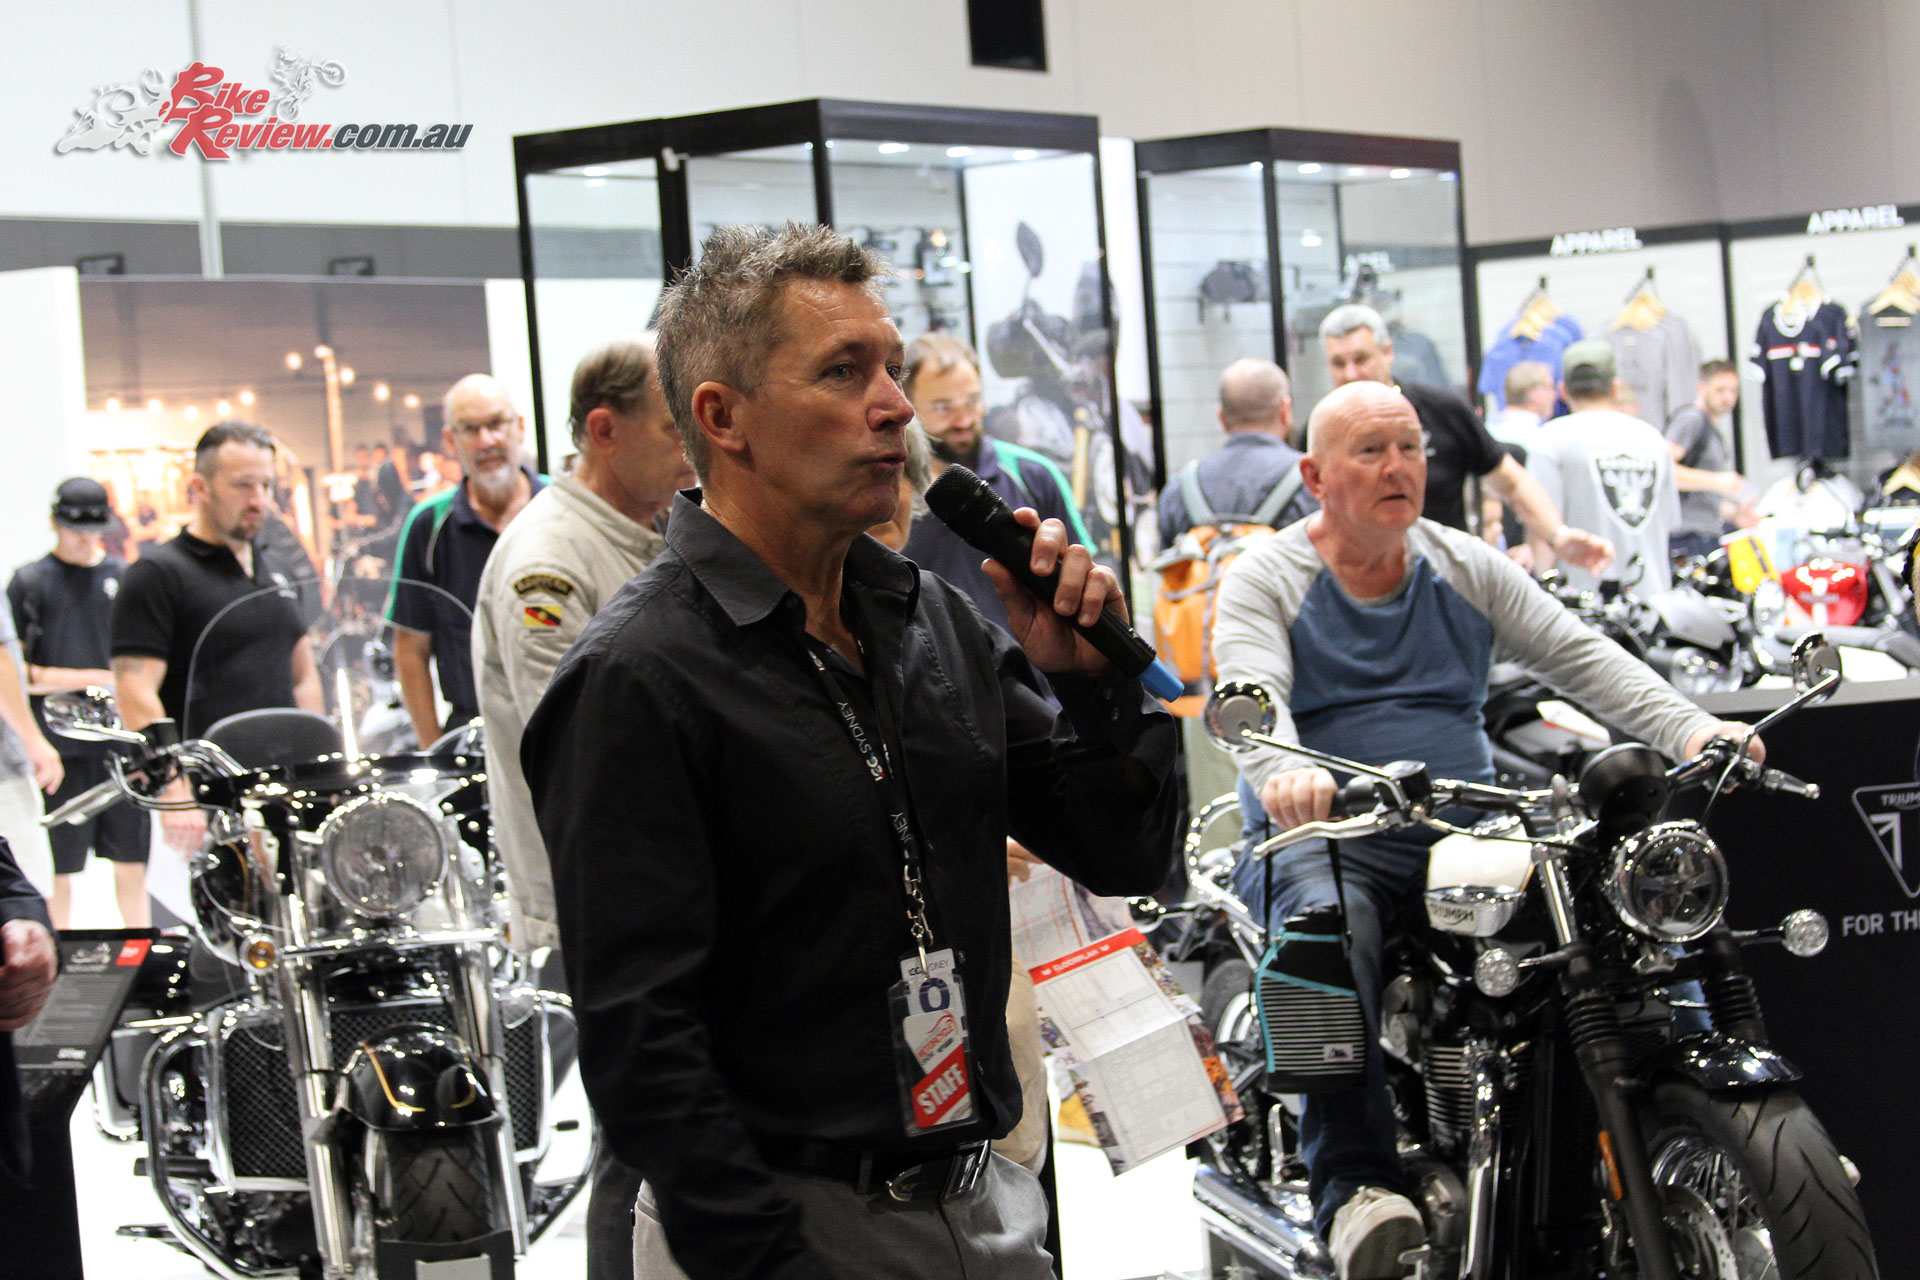 Troy Bayliss introduces the show in front of the Triumph stand